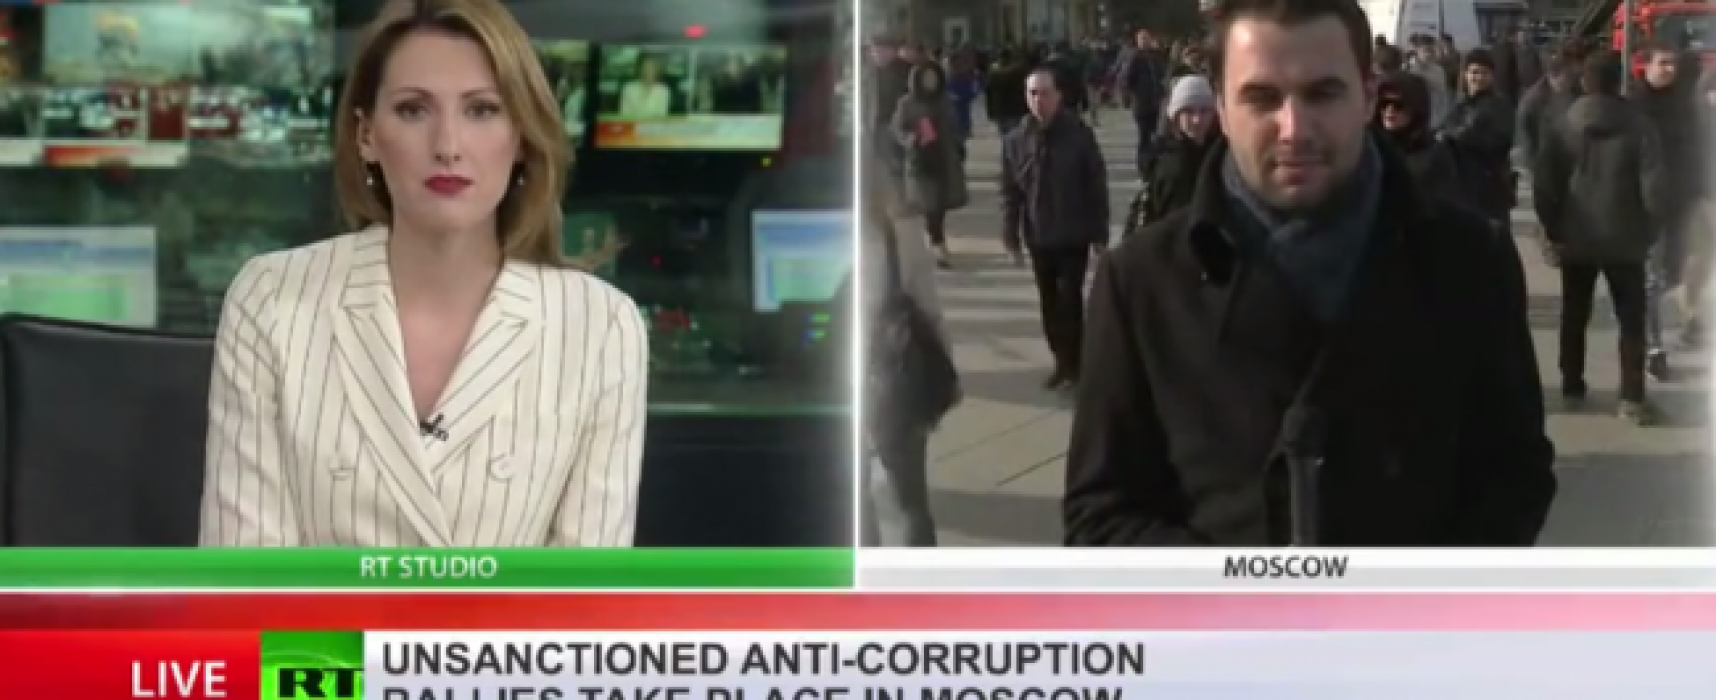 How does Russian propaganda cover the Russia protests? It's awkward